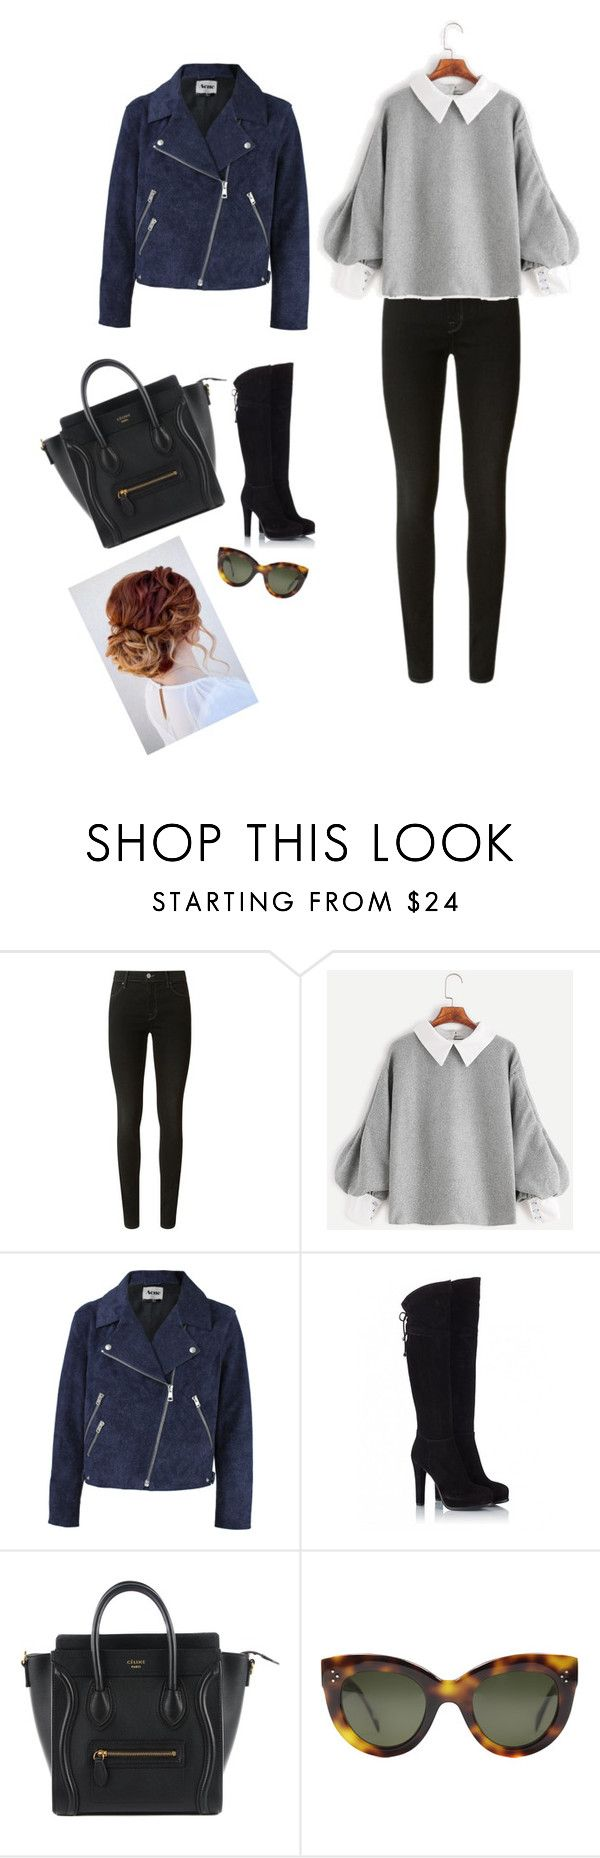 """""""Untitled #3550"""" by audrey-balt ❤ liked on Polyvore featuring J Brand, Acne Studios, Fratelli Karida and CÉLINE"""